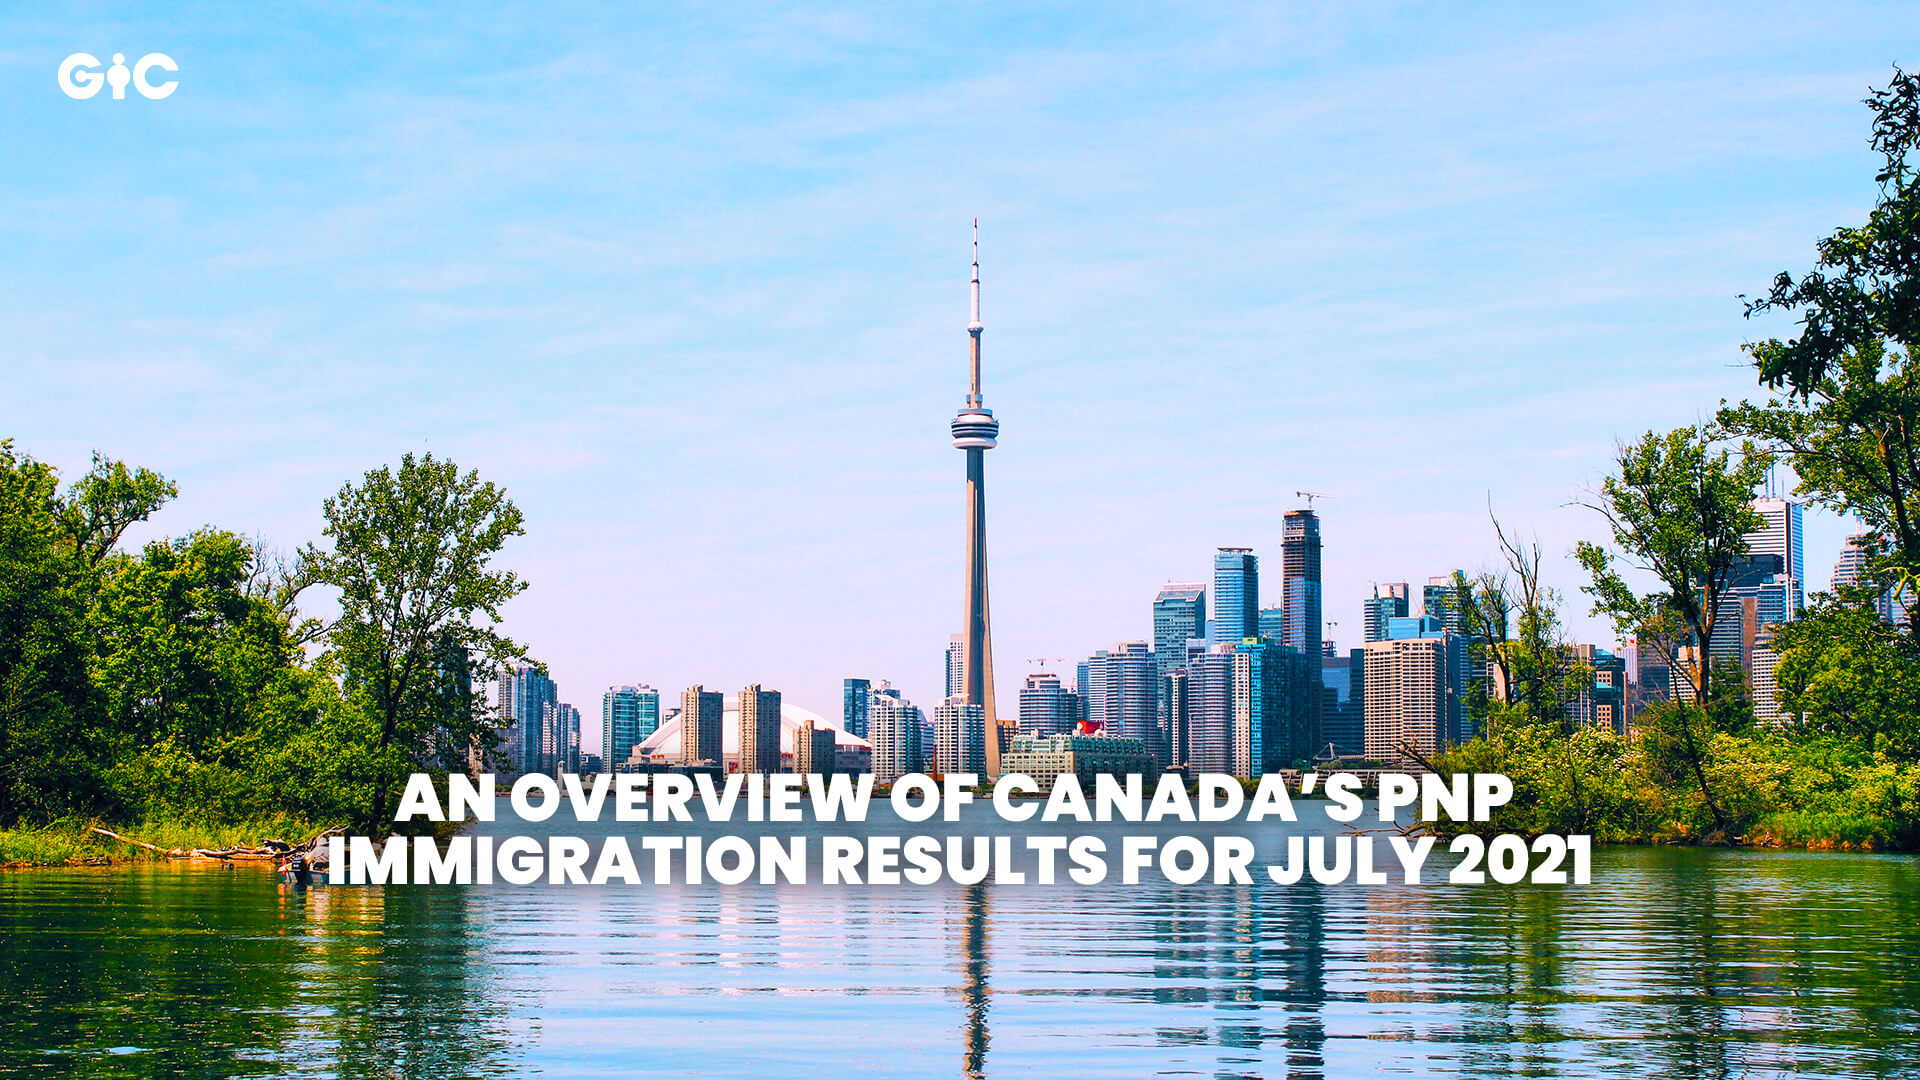 An overview of Canada's PNP immigration results for July 2021